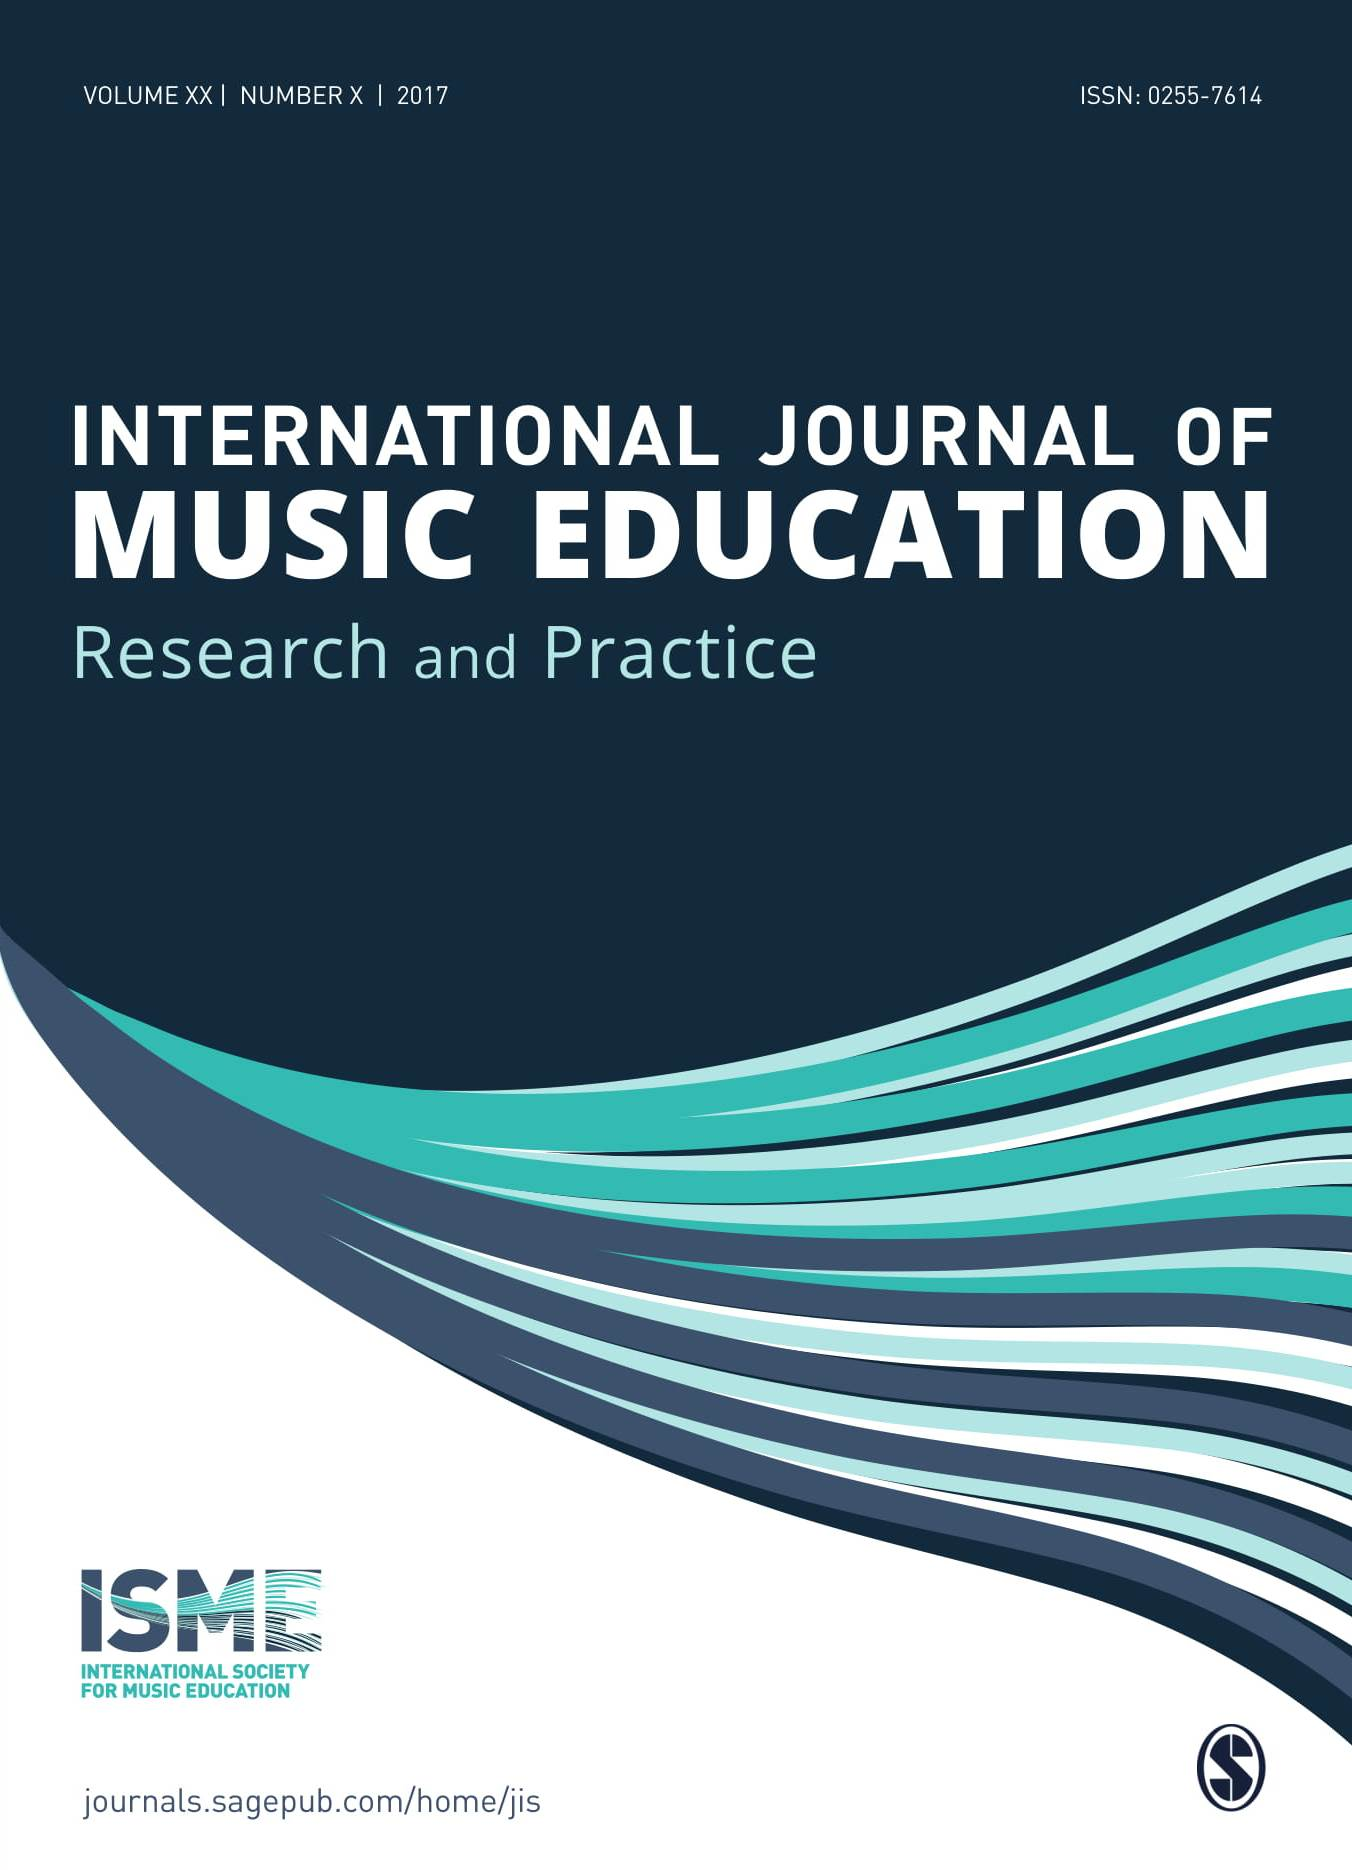 New cover design for the Journal